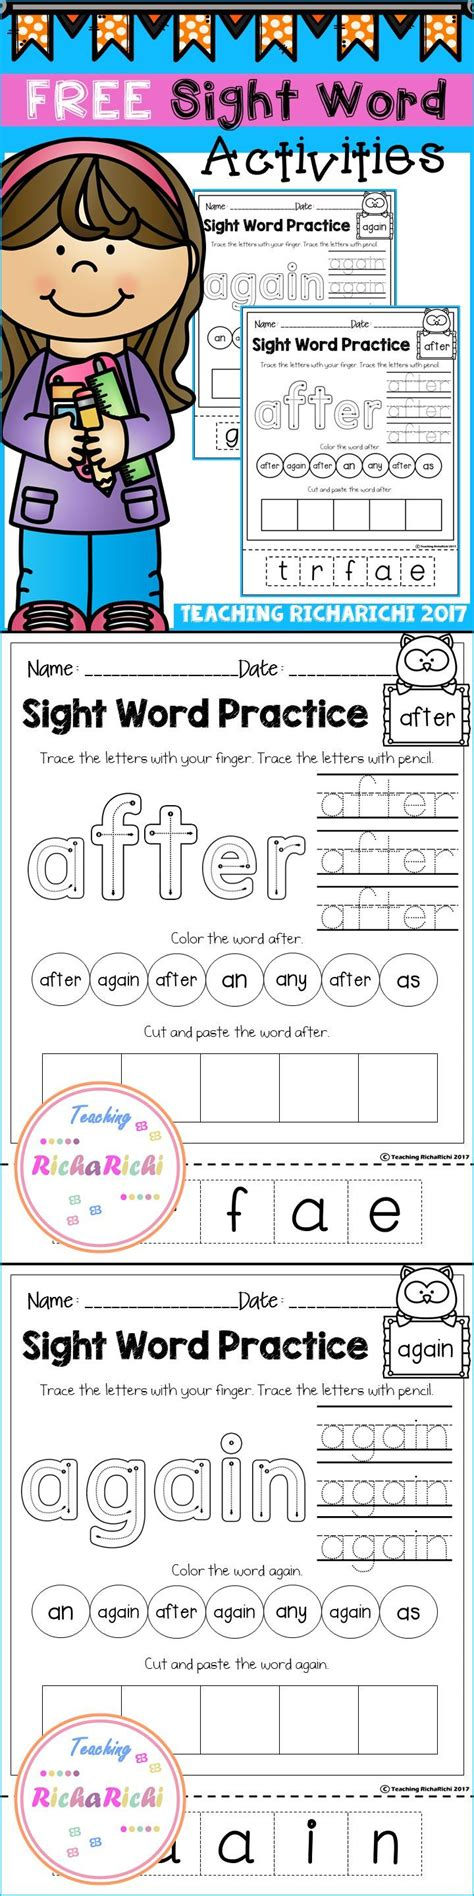 46 best images about solid hoardings on pinterest solid fun math worksheet answers cc 46 kidz activities